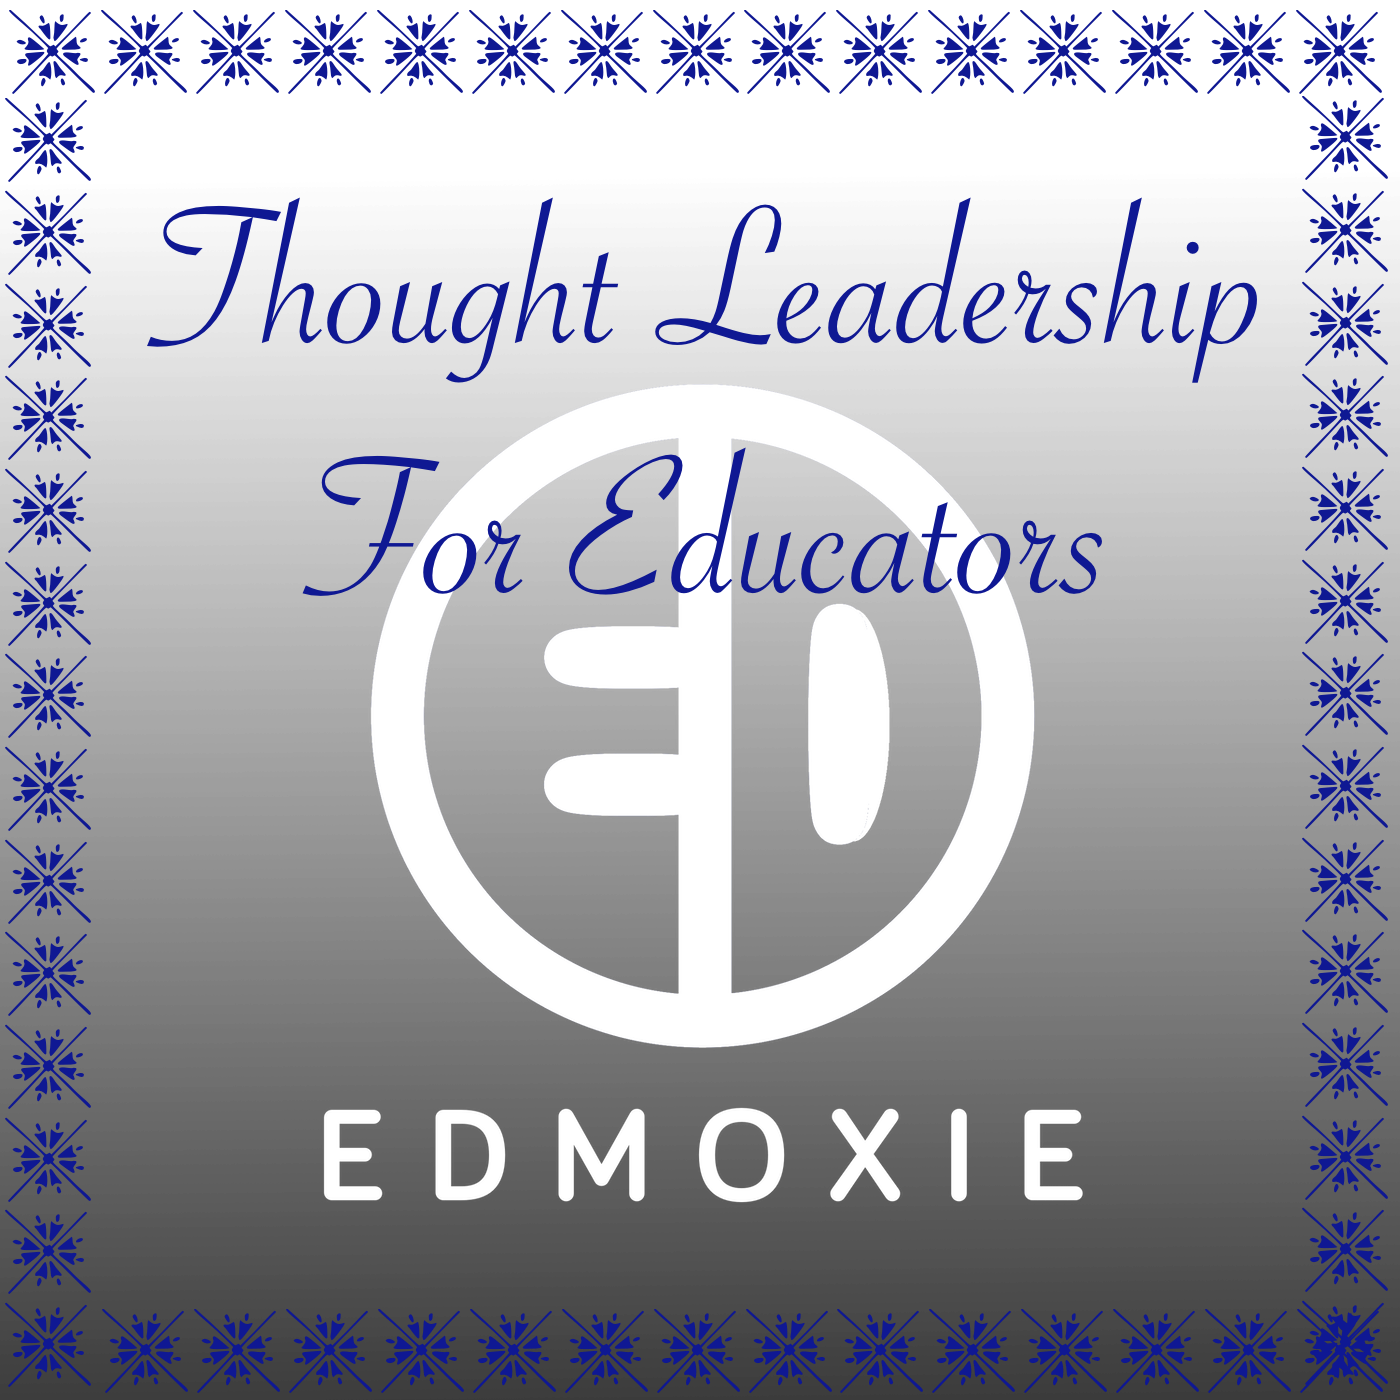 Edmoxie: Thought Leadership For Educators